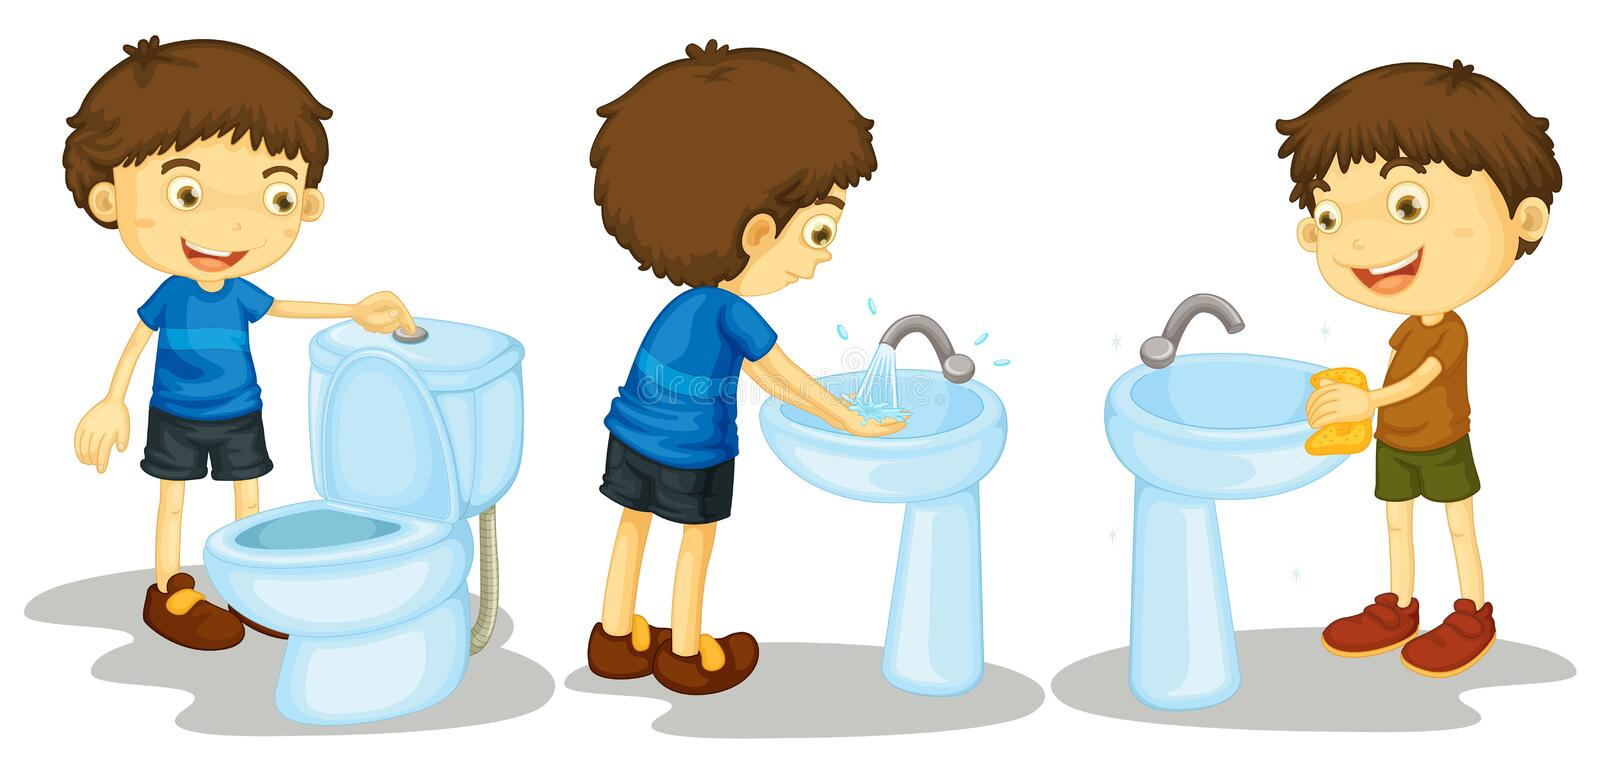 Boy and toilet stock illustration